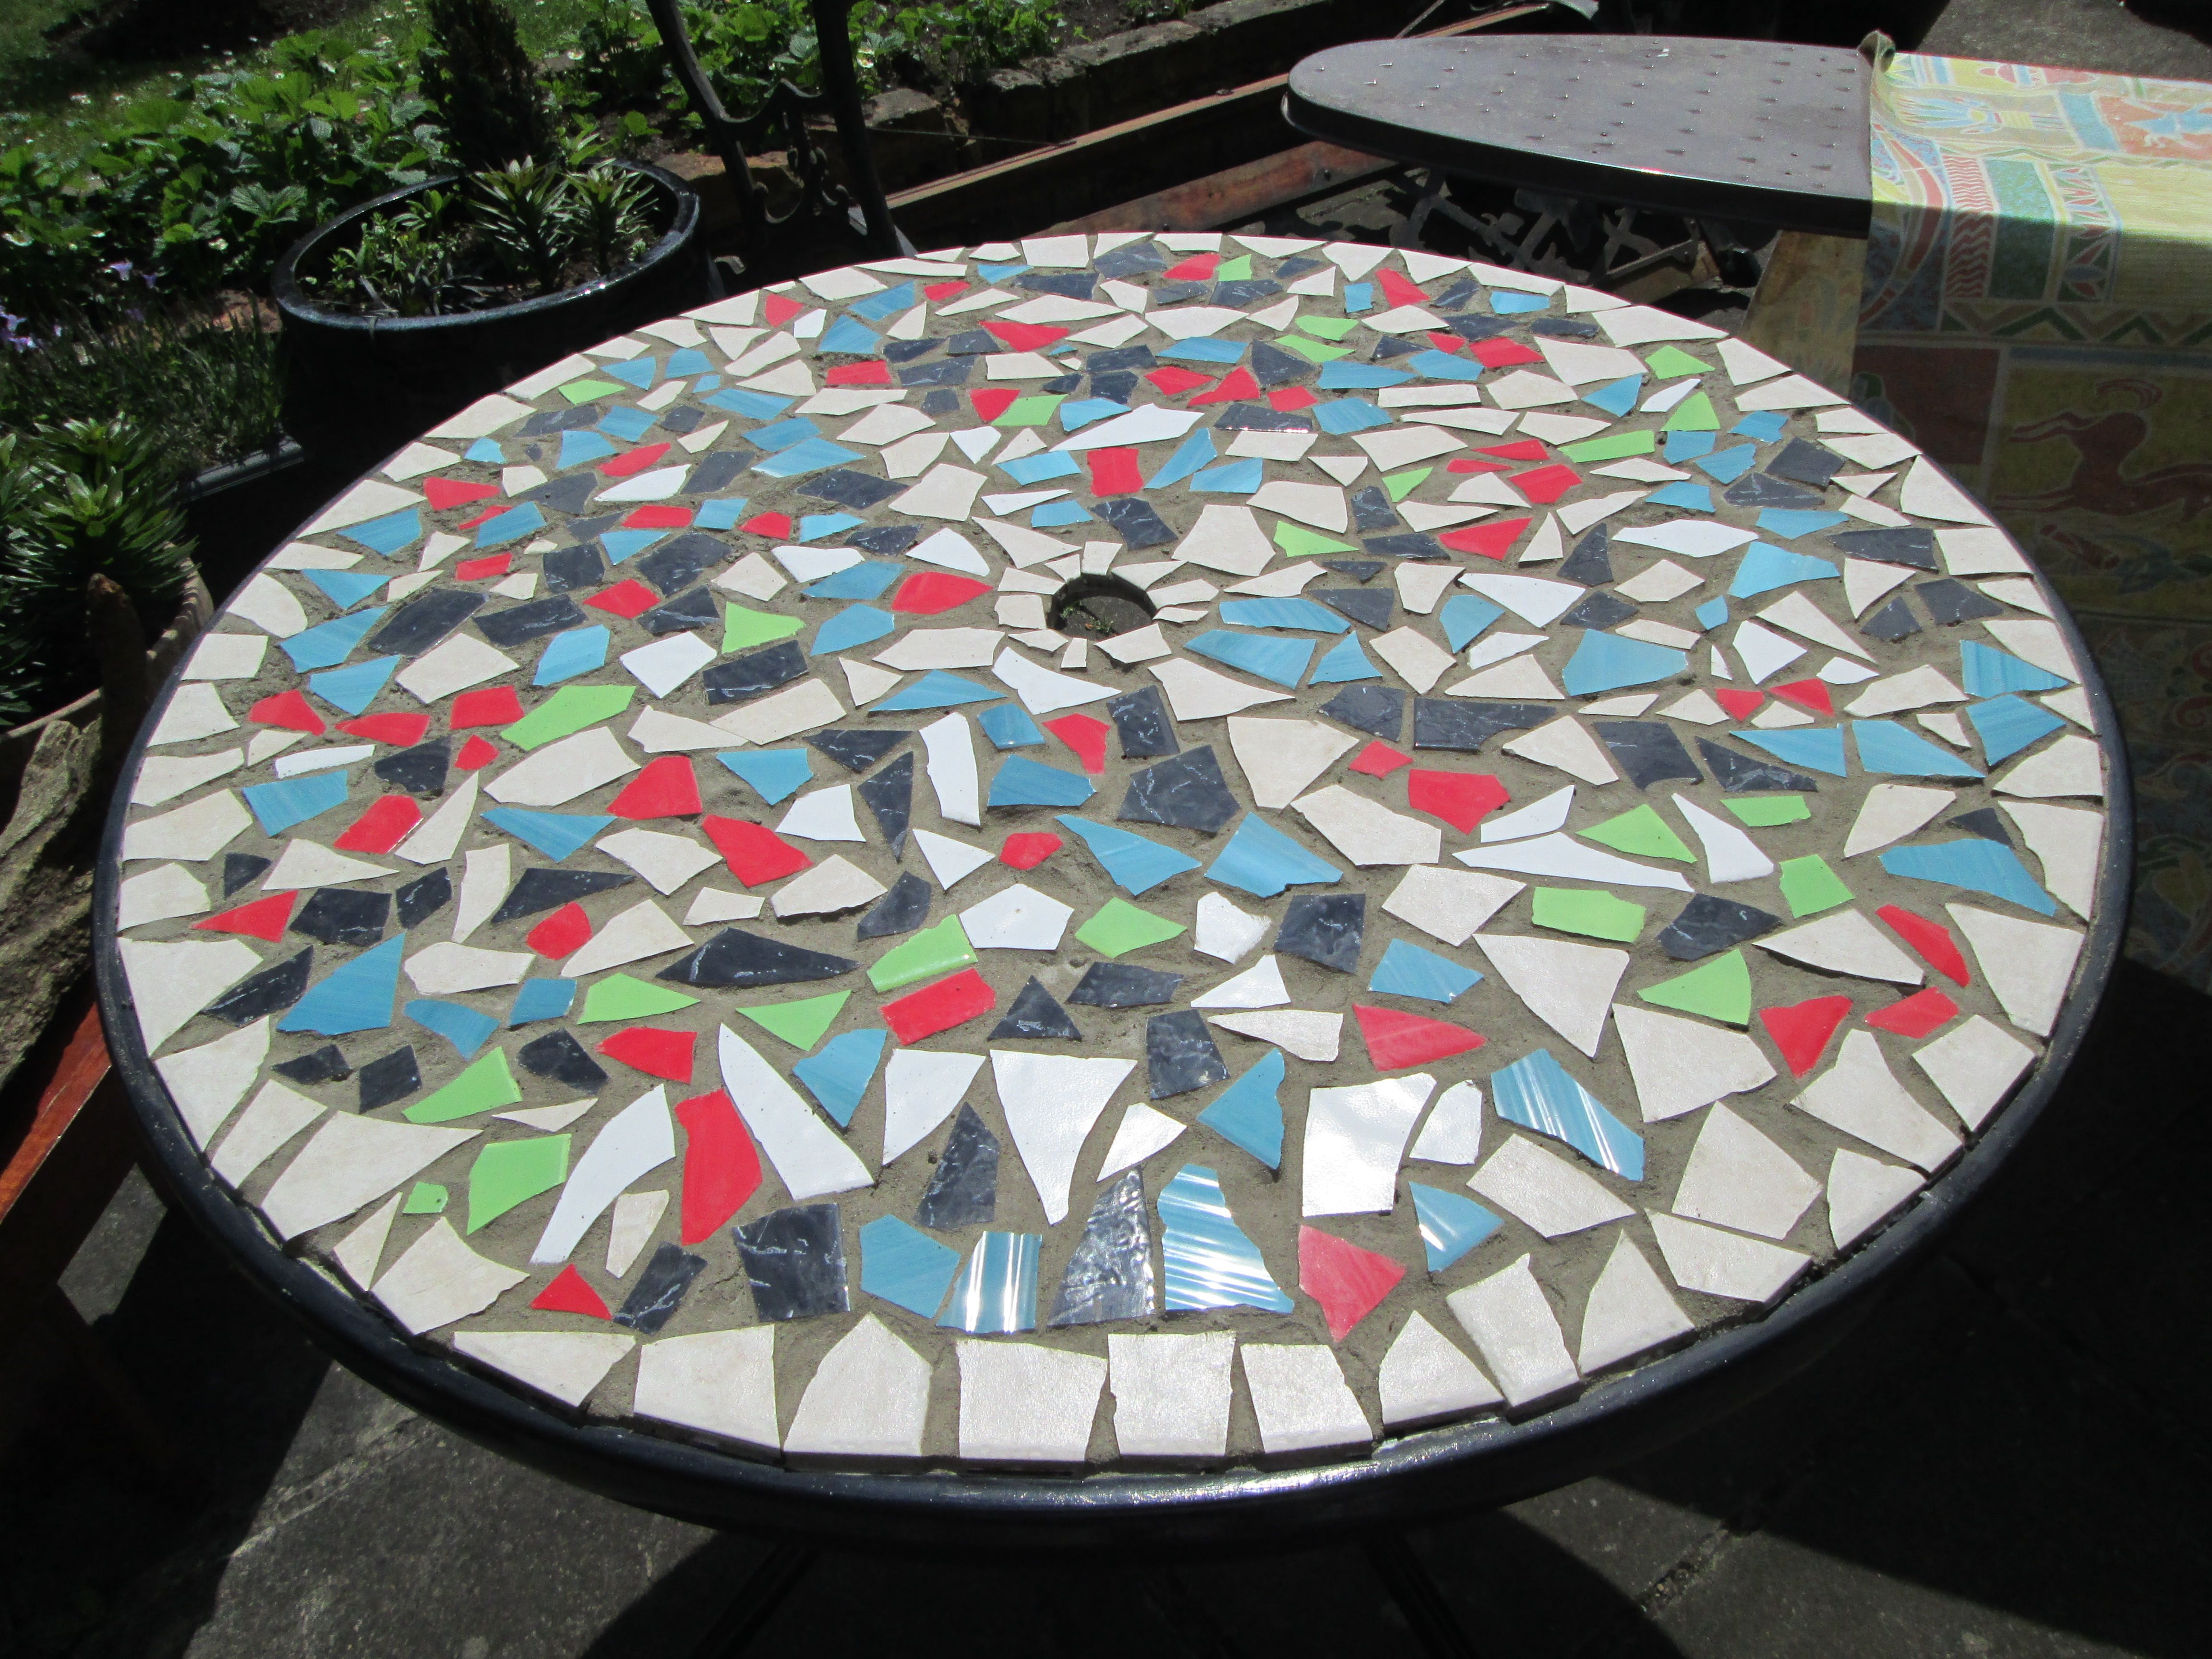 Sold custom made butterfly mosaic table top for mary ann in texas - How To Design Mosaic Table Top With Ceramic Tiles